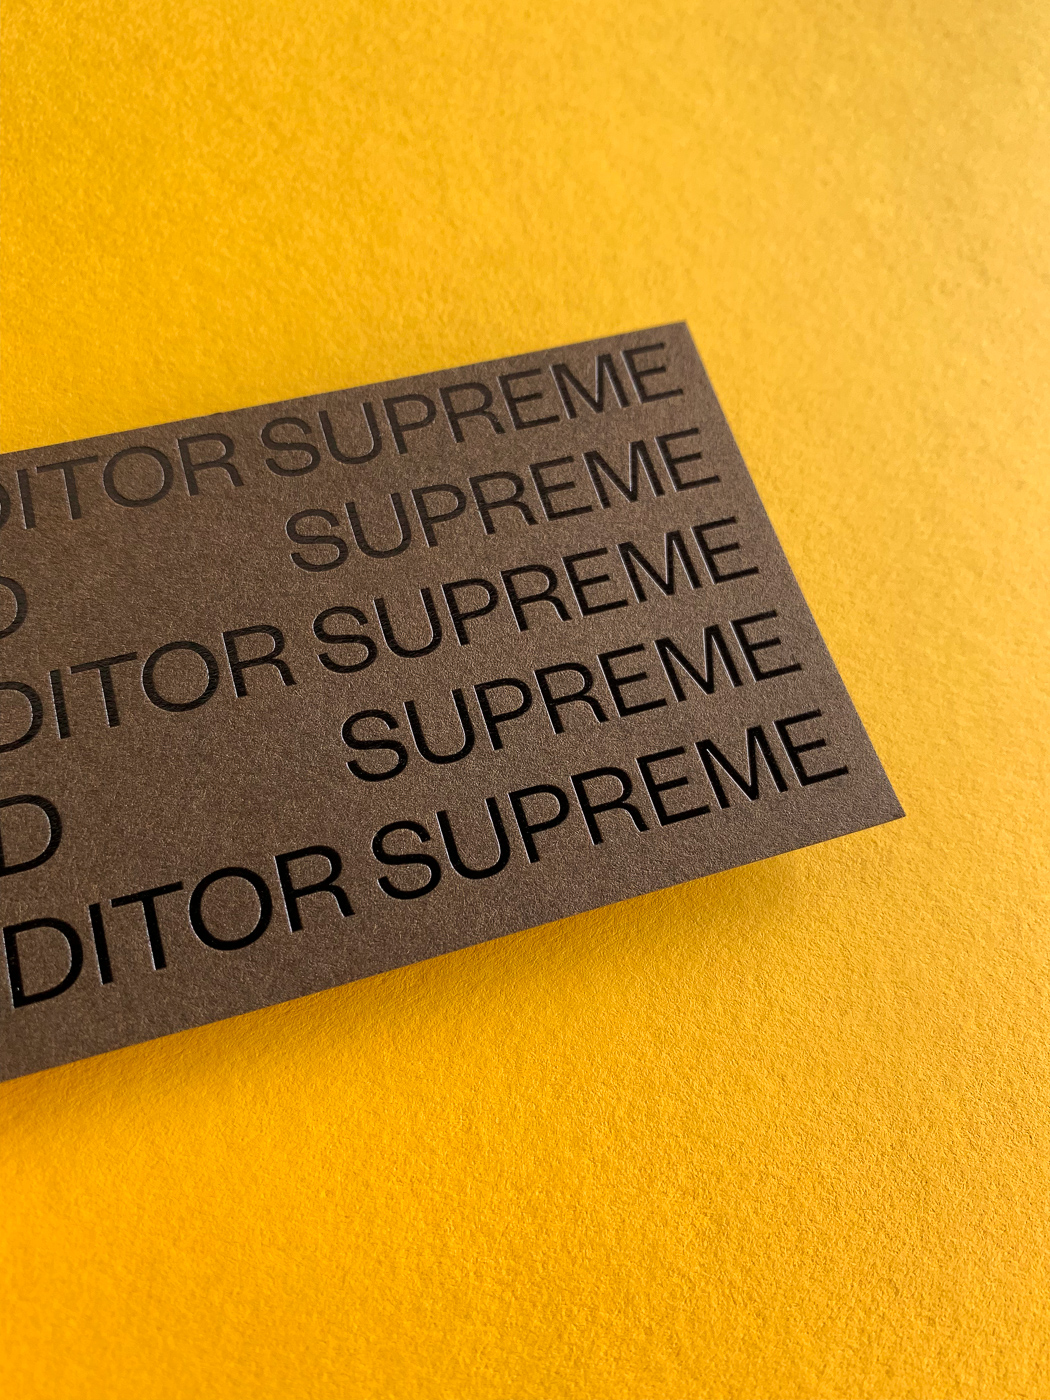 Black foil business cards for Ed Supreme on Colorplan 4